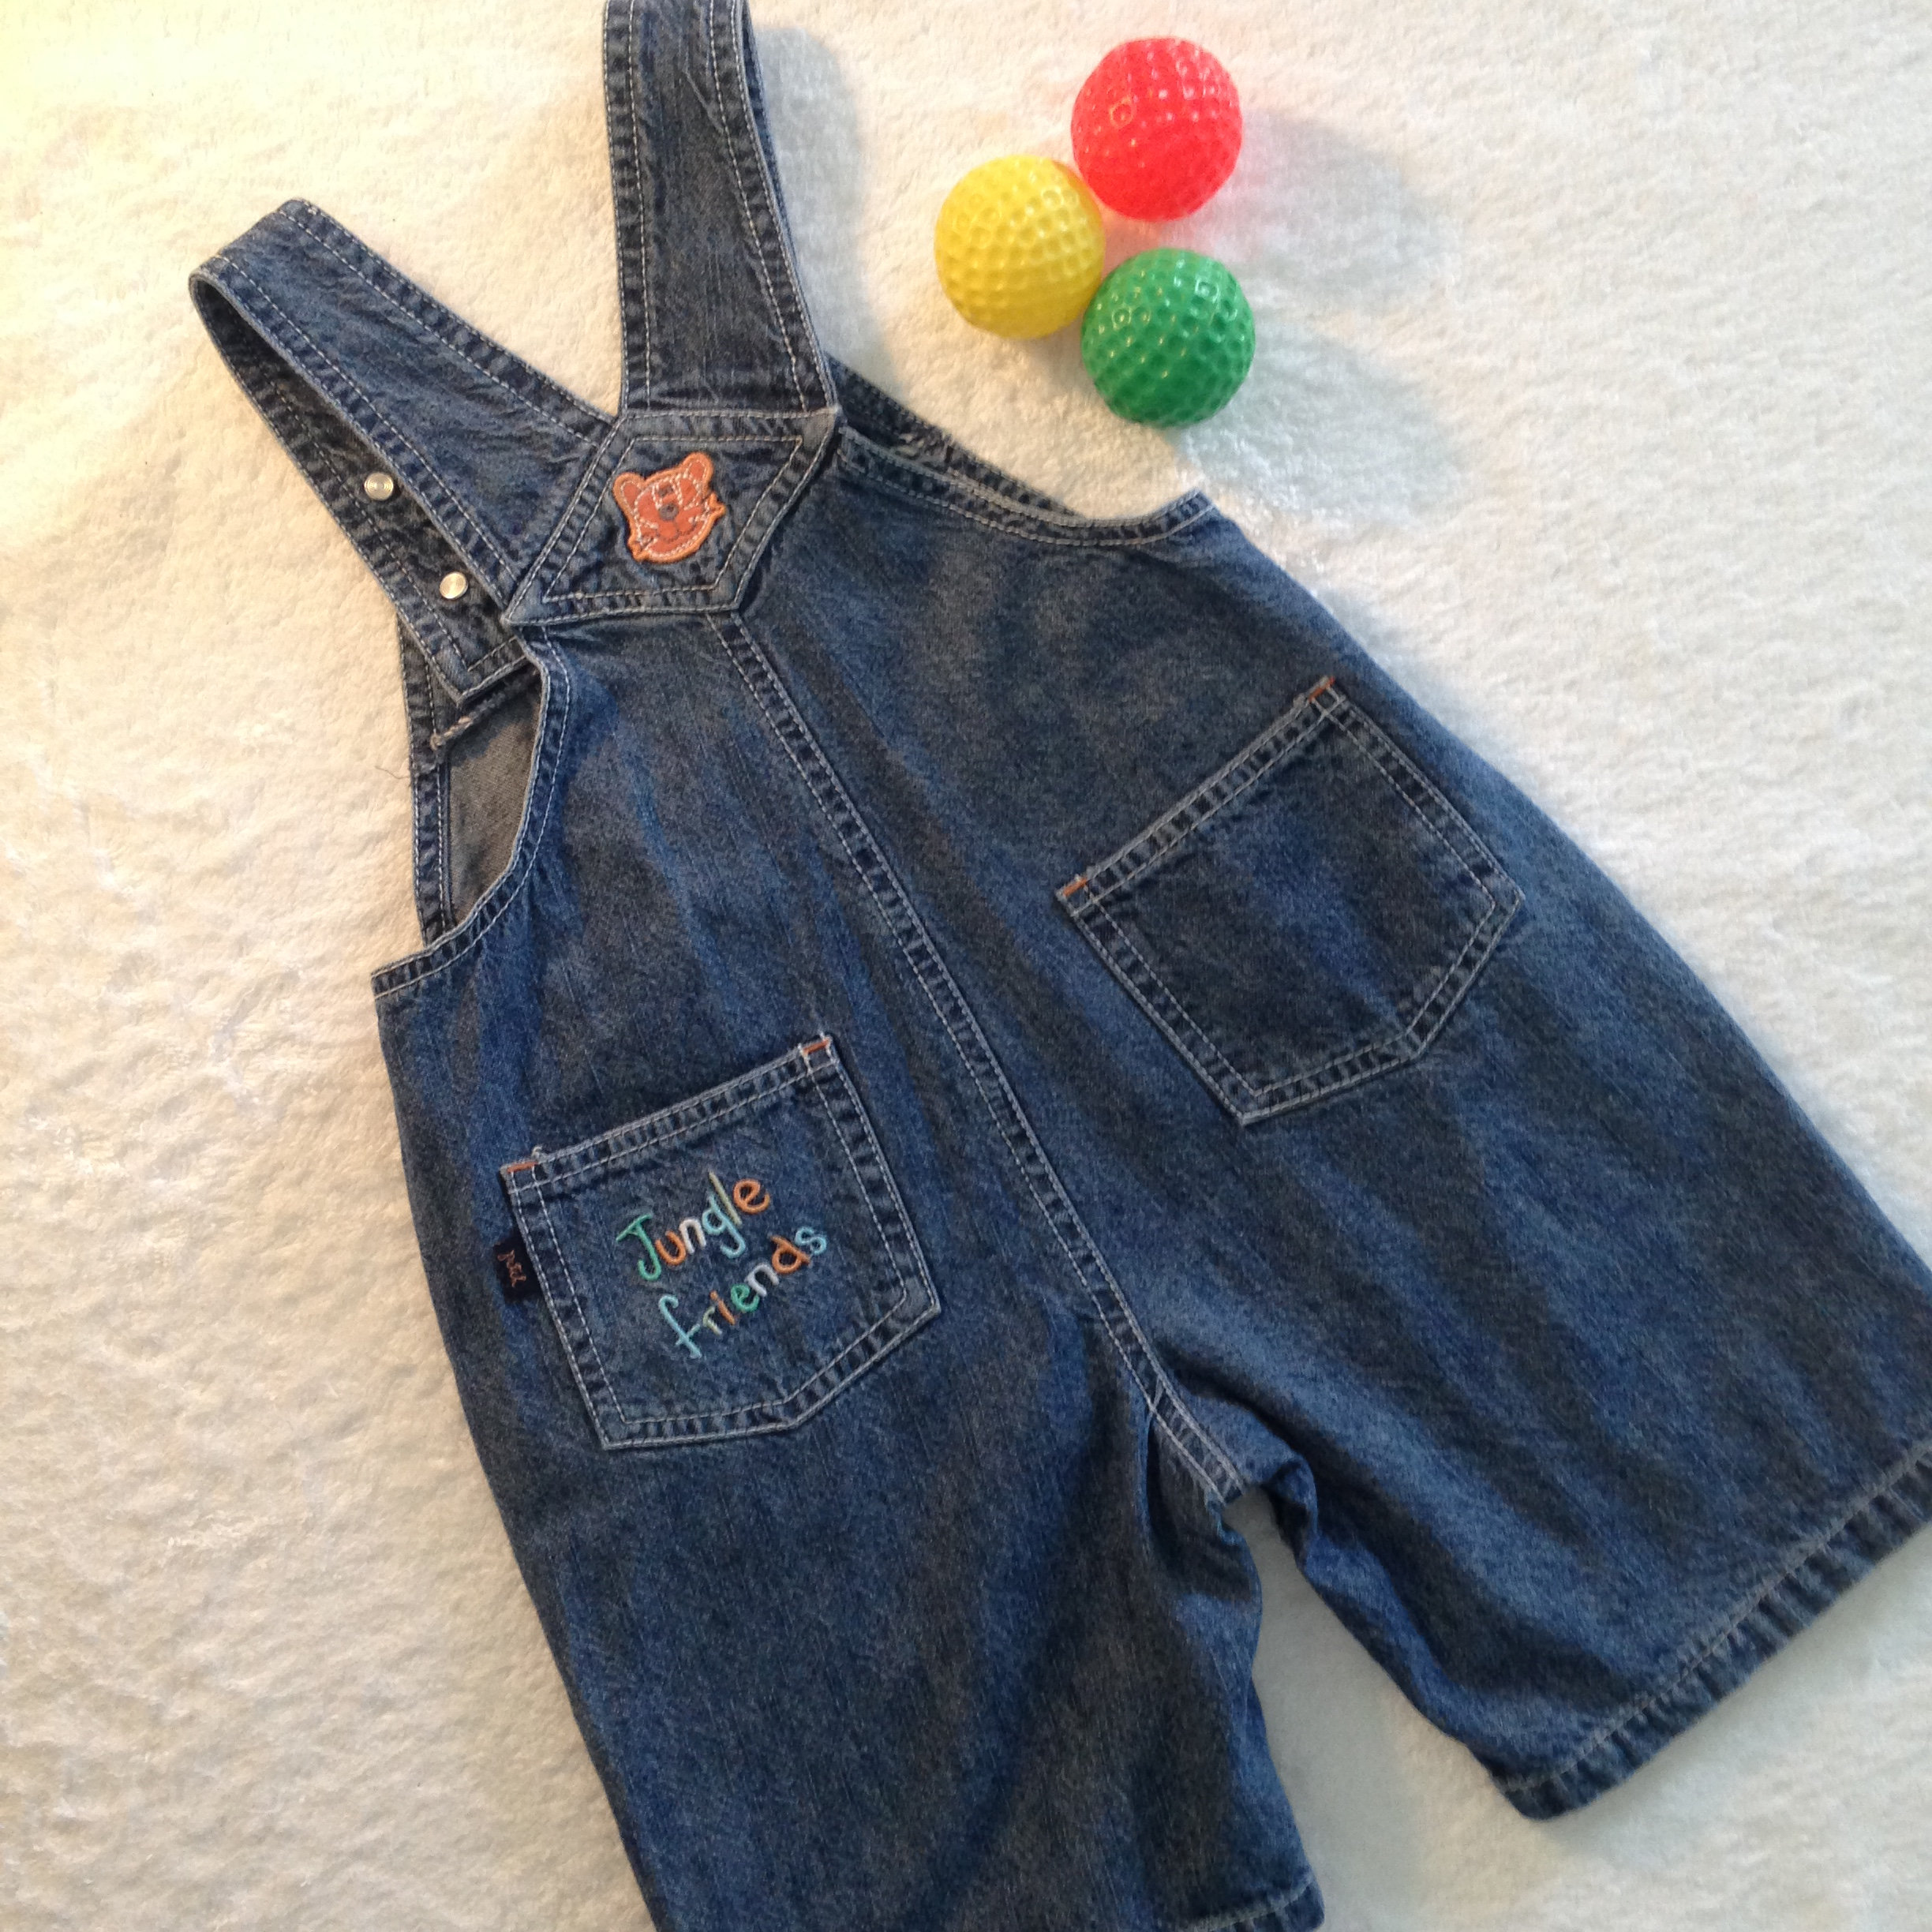 64ac92452 ... Patch Denim Overalls - Baby Boy's Size 1 - lightwerigt denim - overalls  with bib with elehant pic - adjustable button straps - bib, back & front  pockets ...